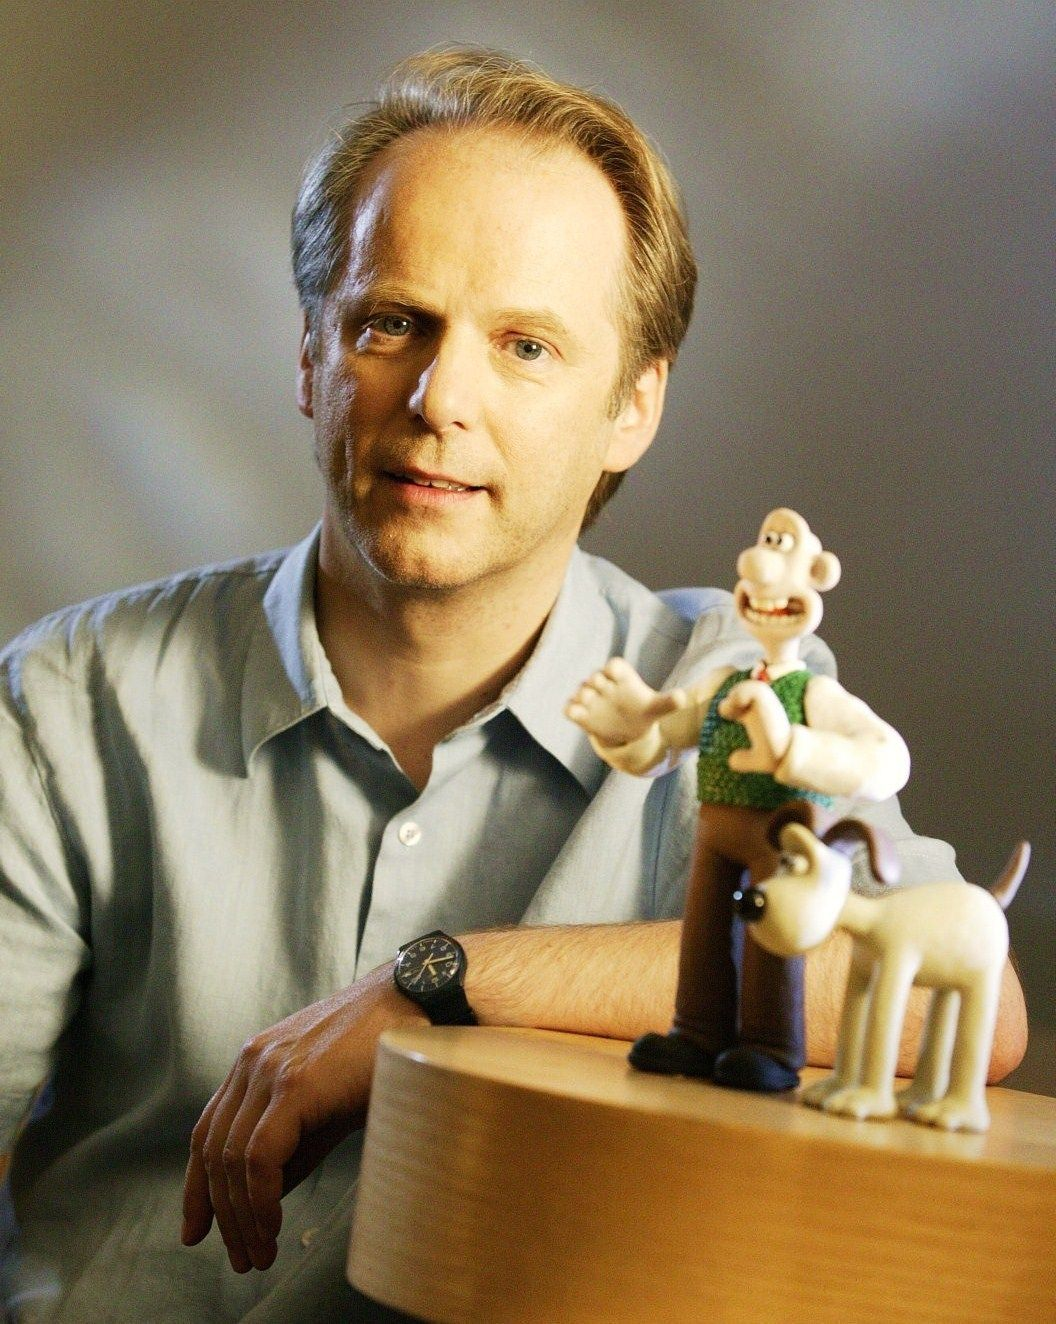 Wallace and Gromit - Google Search   Aardman animations ...